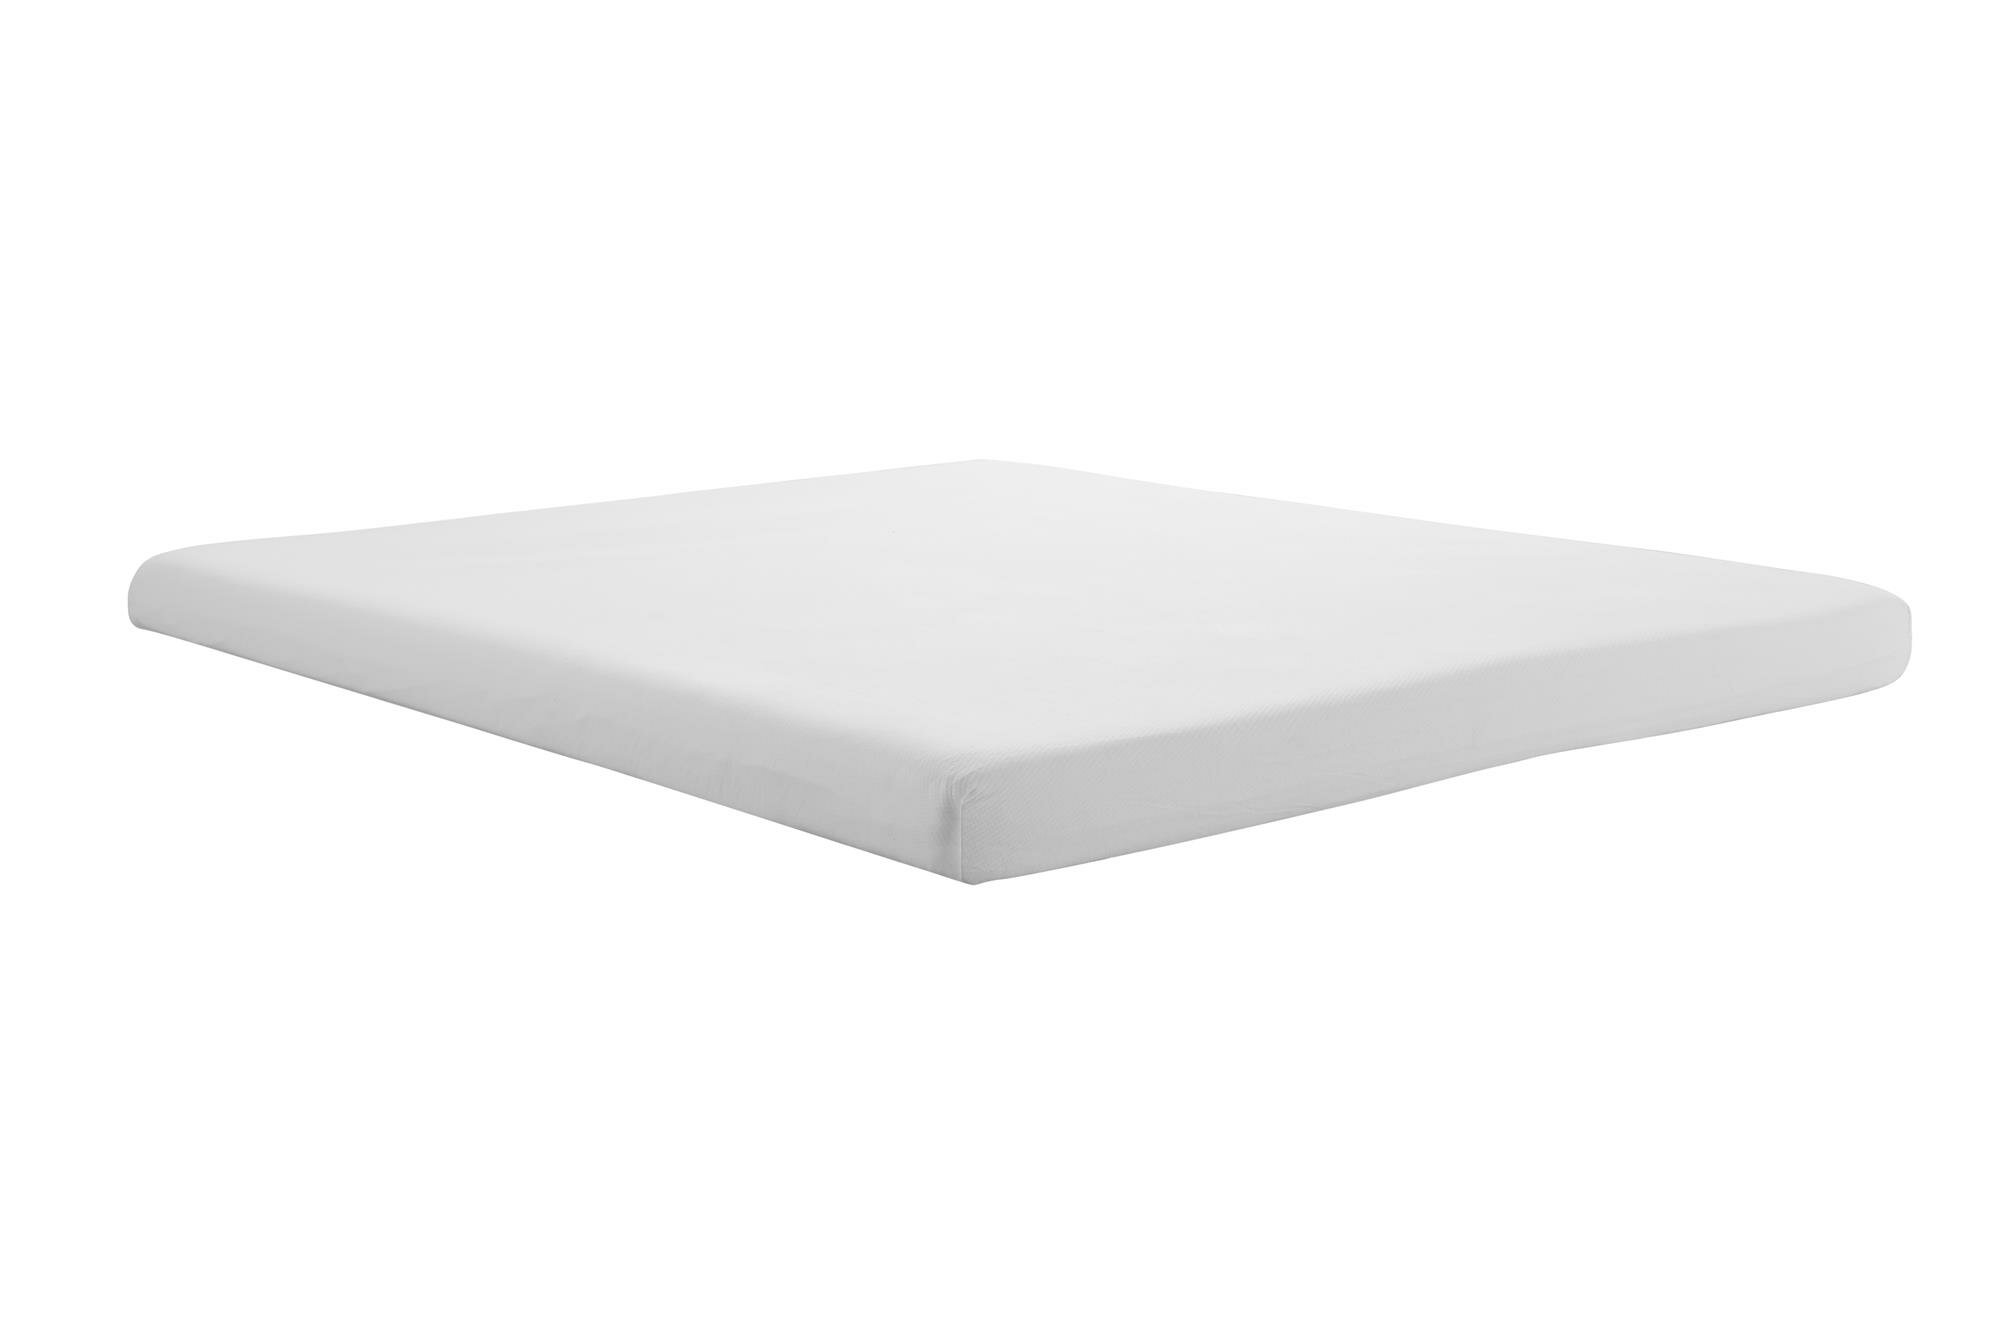 Signature Sleep Certipur Us Sofa Bed Replacement Mattress Ebay